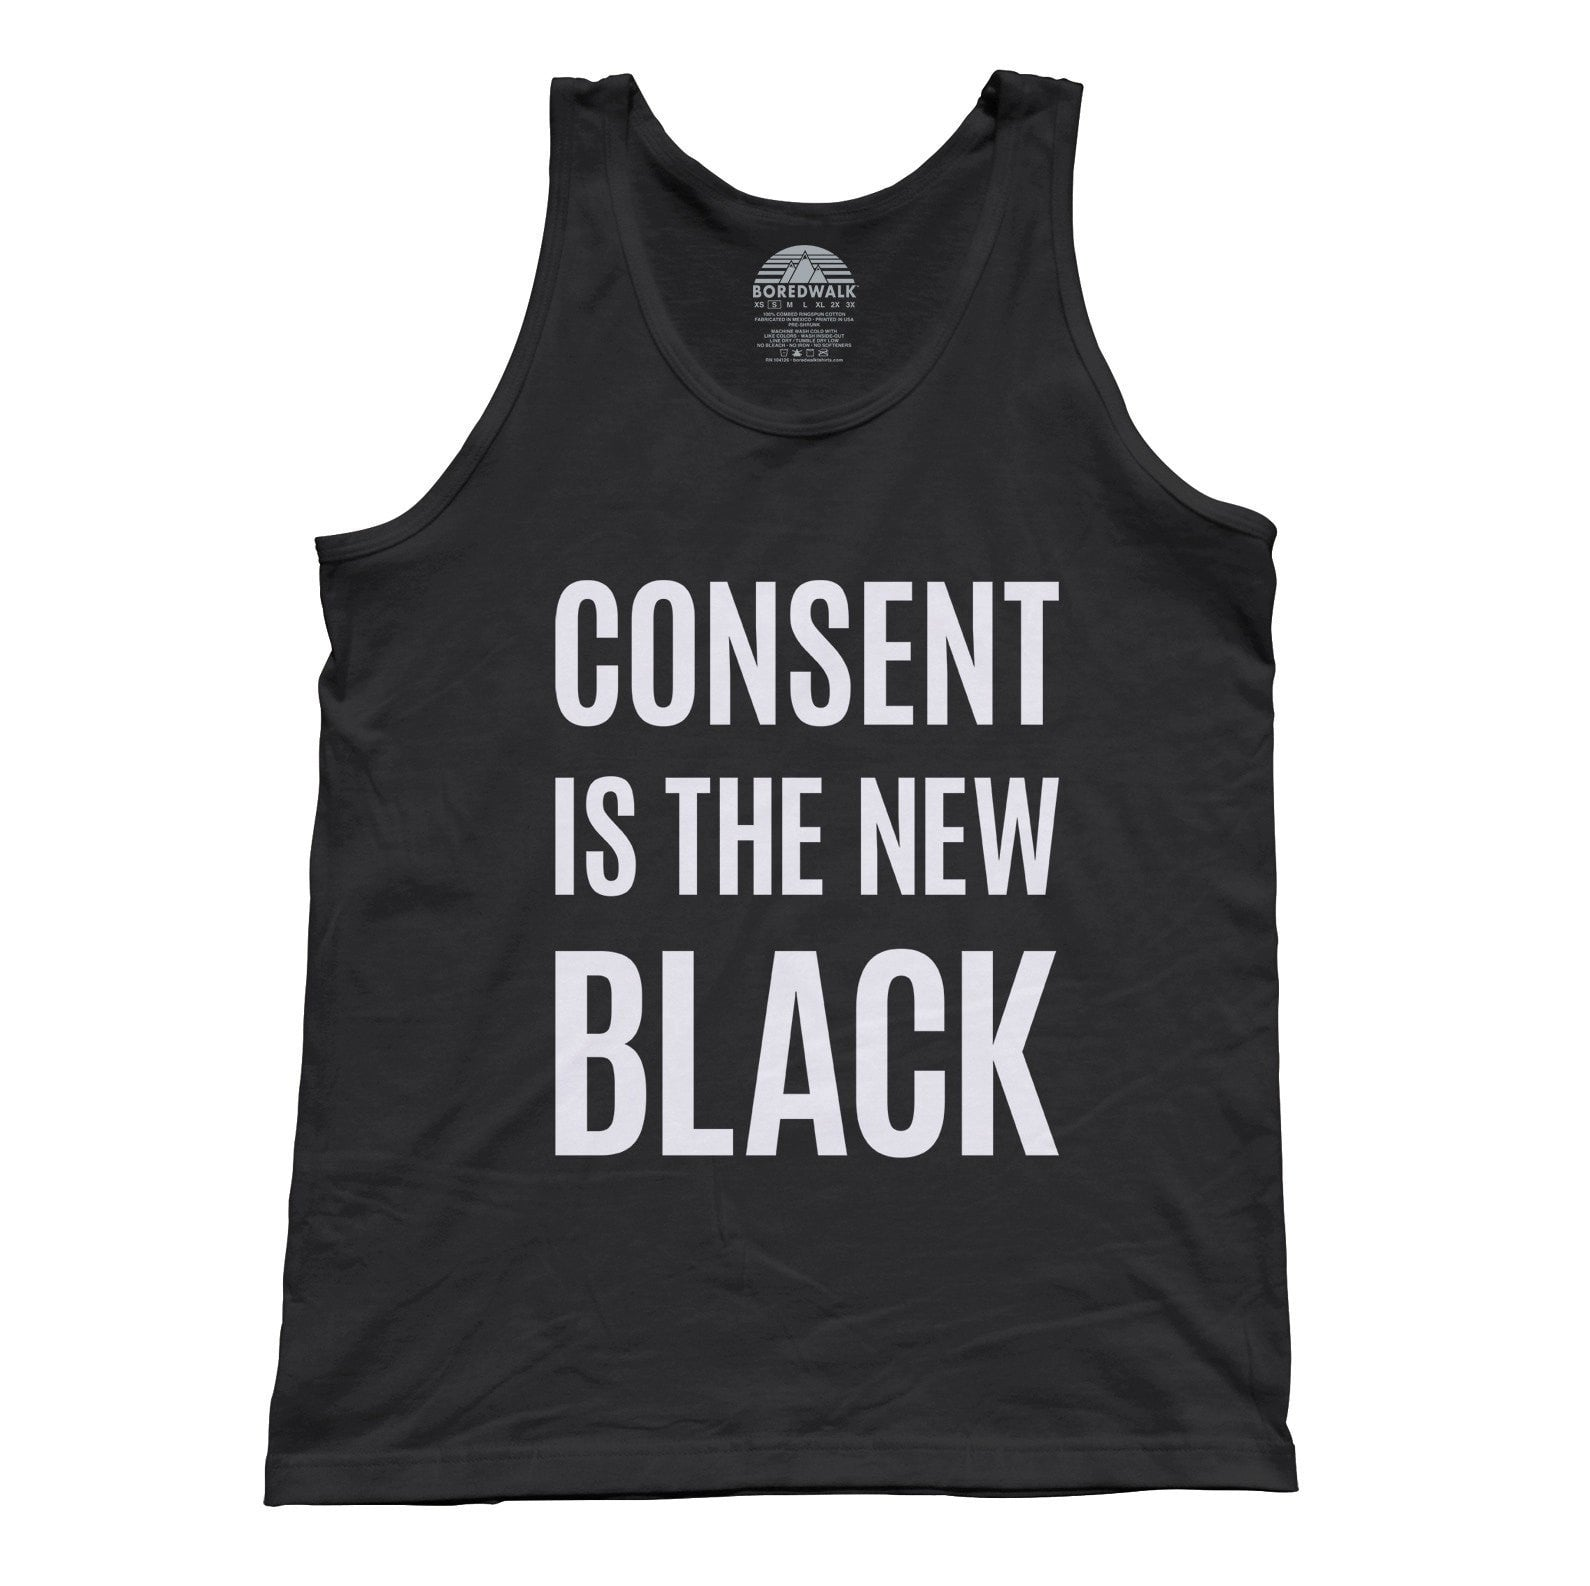 Unisex Consent is the New Black Tank Top